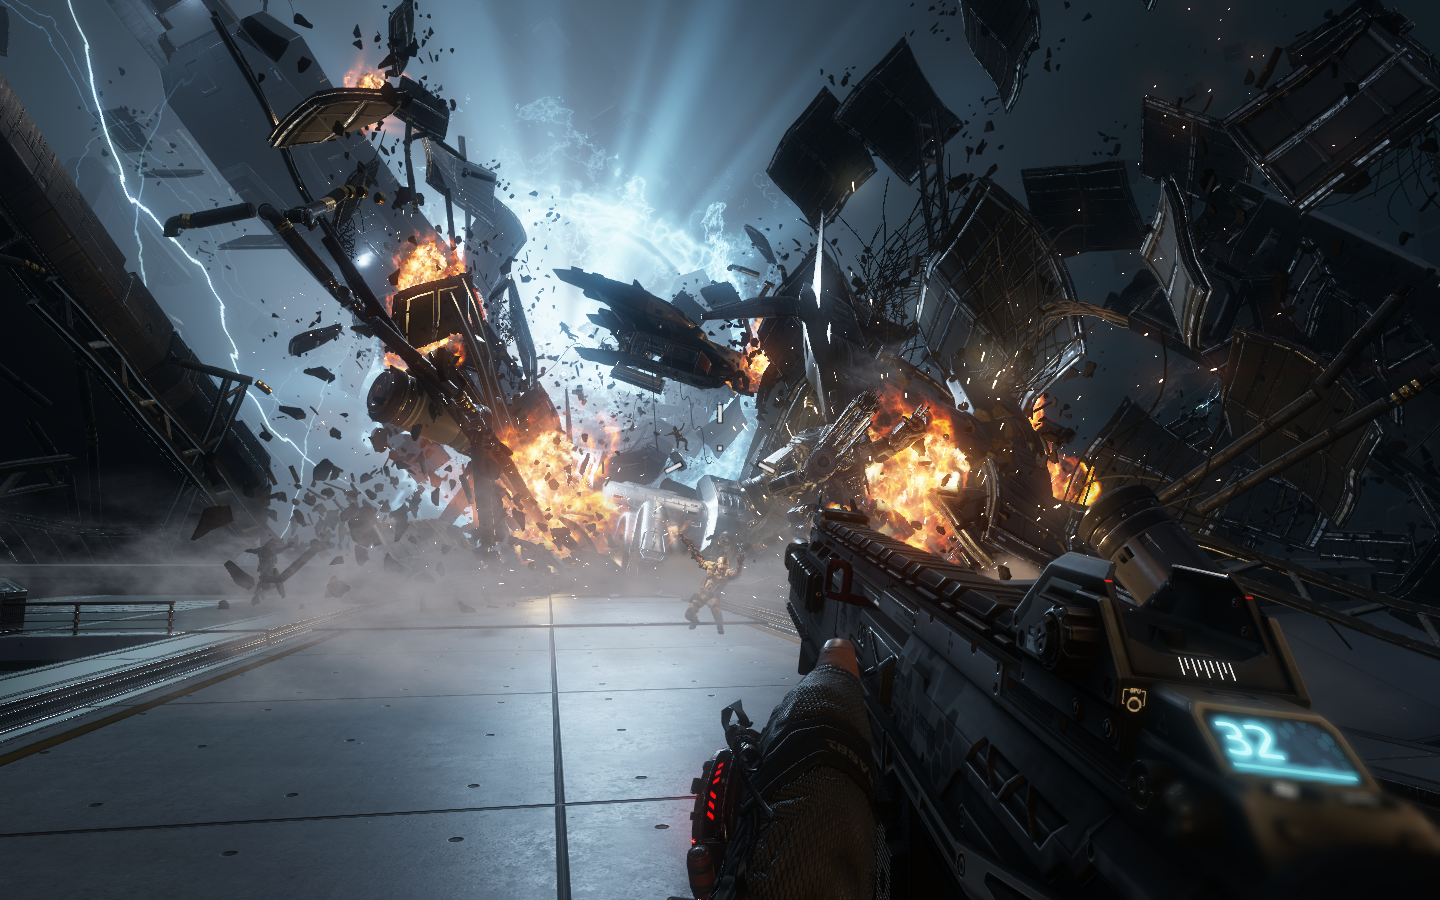 Titanfall 2 28.07.2018 15_34_59.png - -